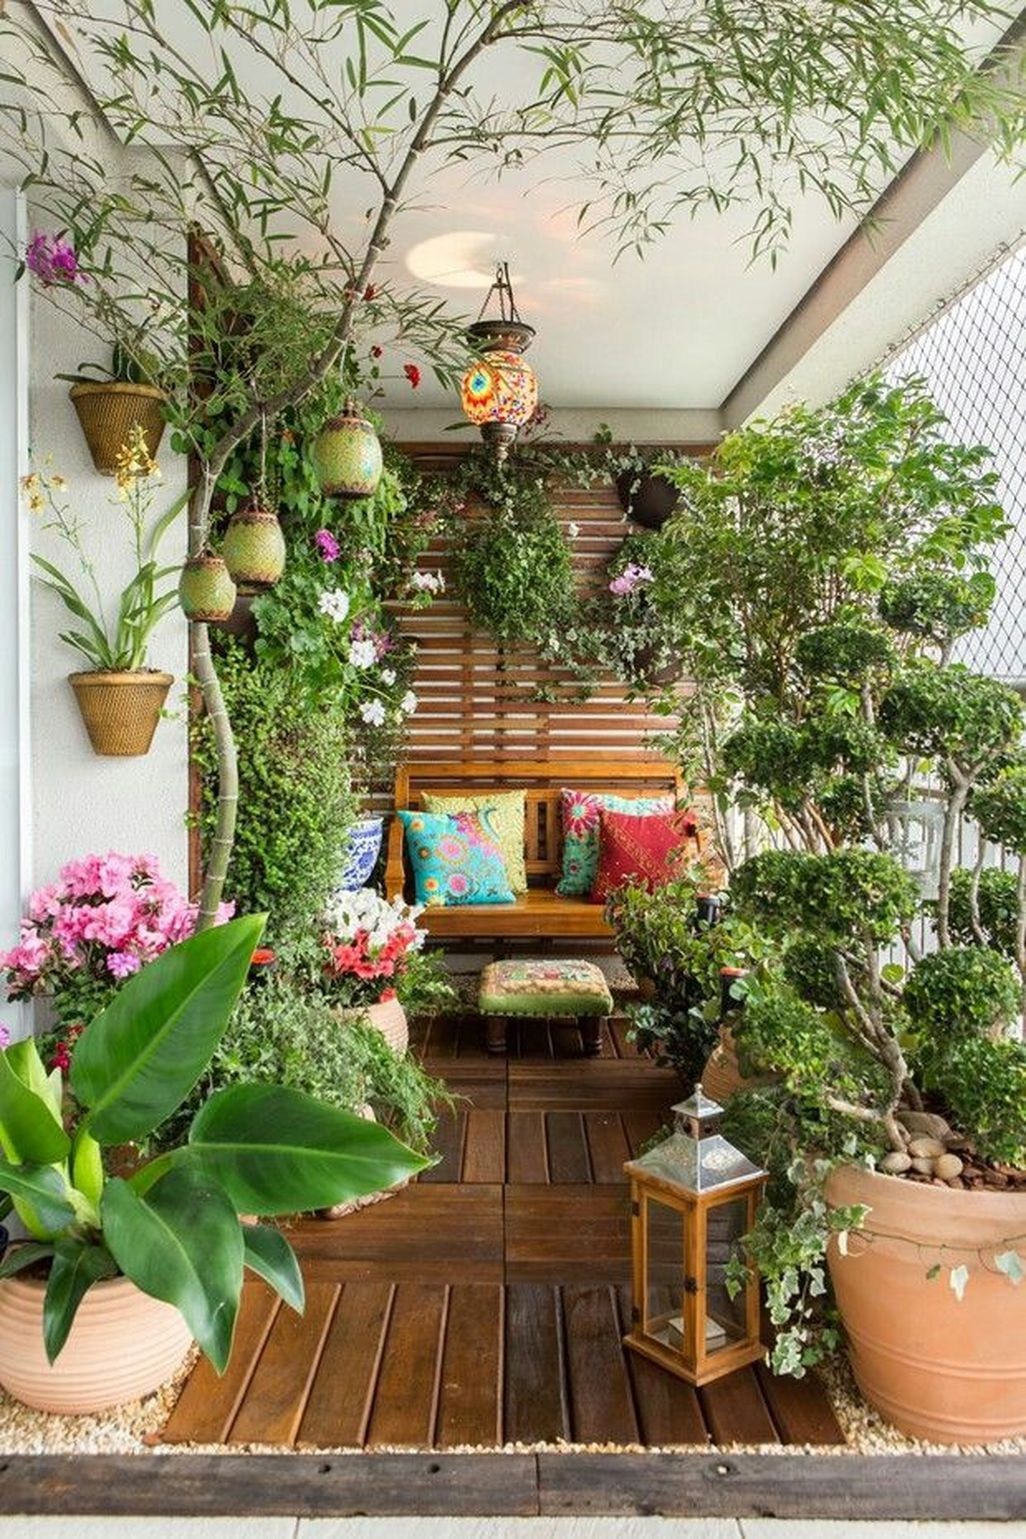 Green Balcony Ideas 41 Cozy and Beautiful Green Balcony Ideas